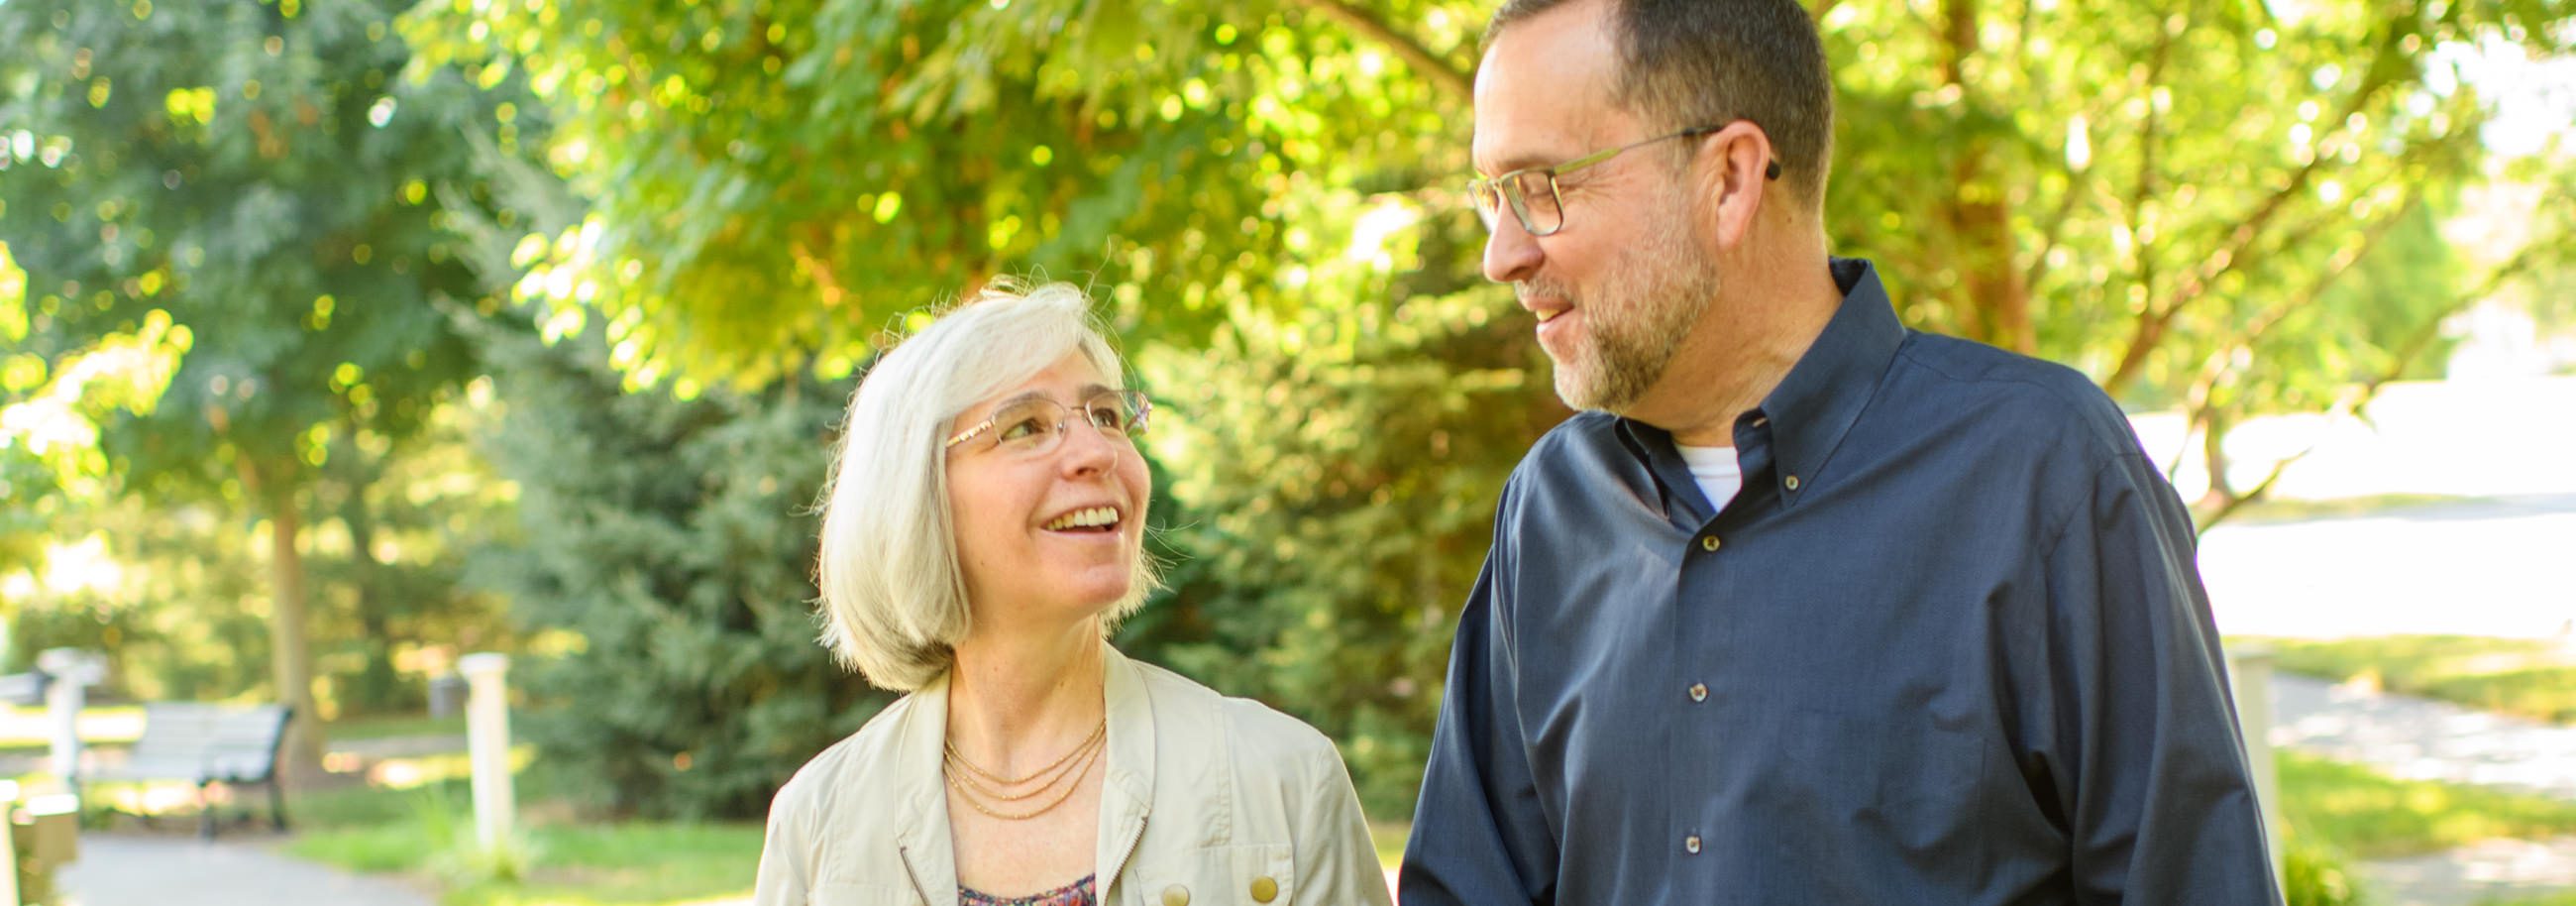 Ted and Kathy Krug find a new way forward at Garden Spot Village.